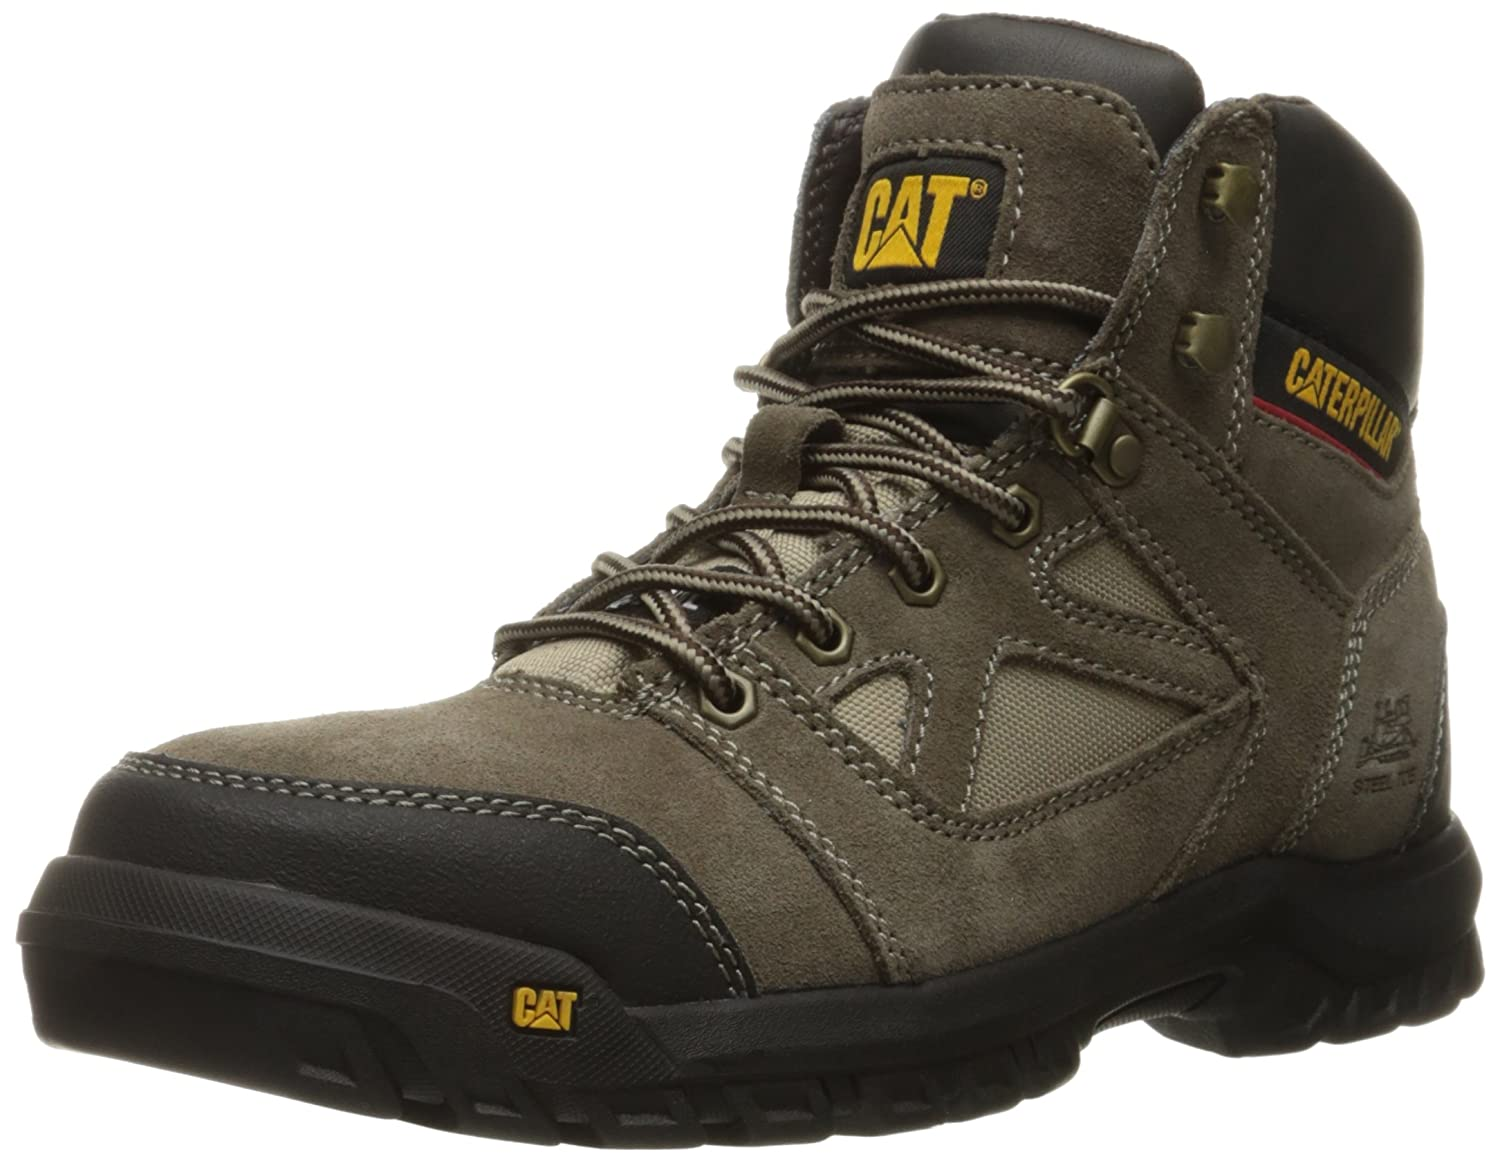 Amazoncom Caterpillar Mens Plan Steel Toe Work Boot Shoes